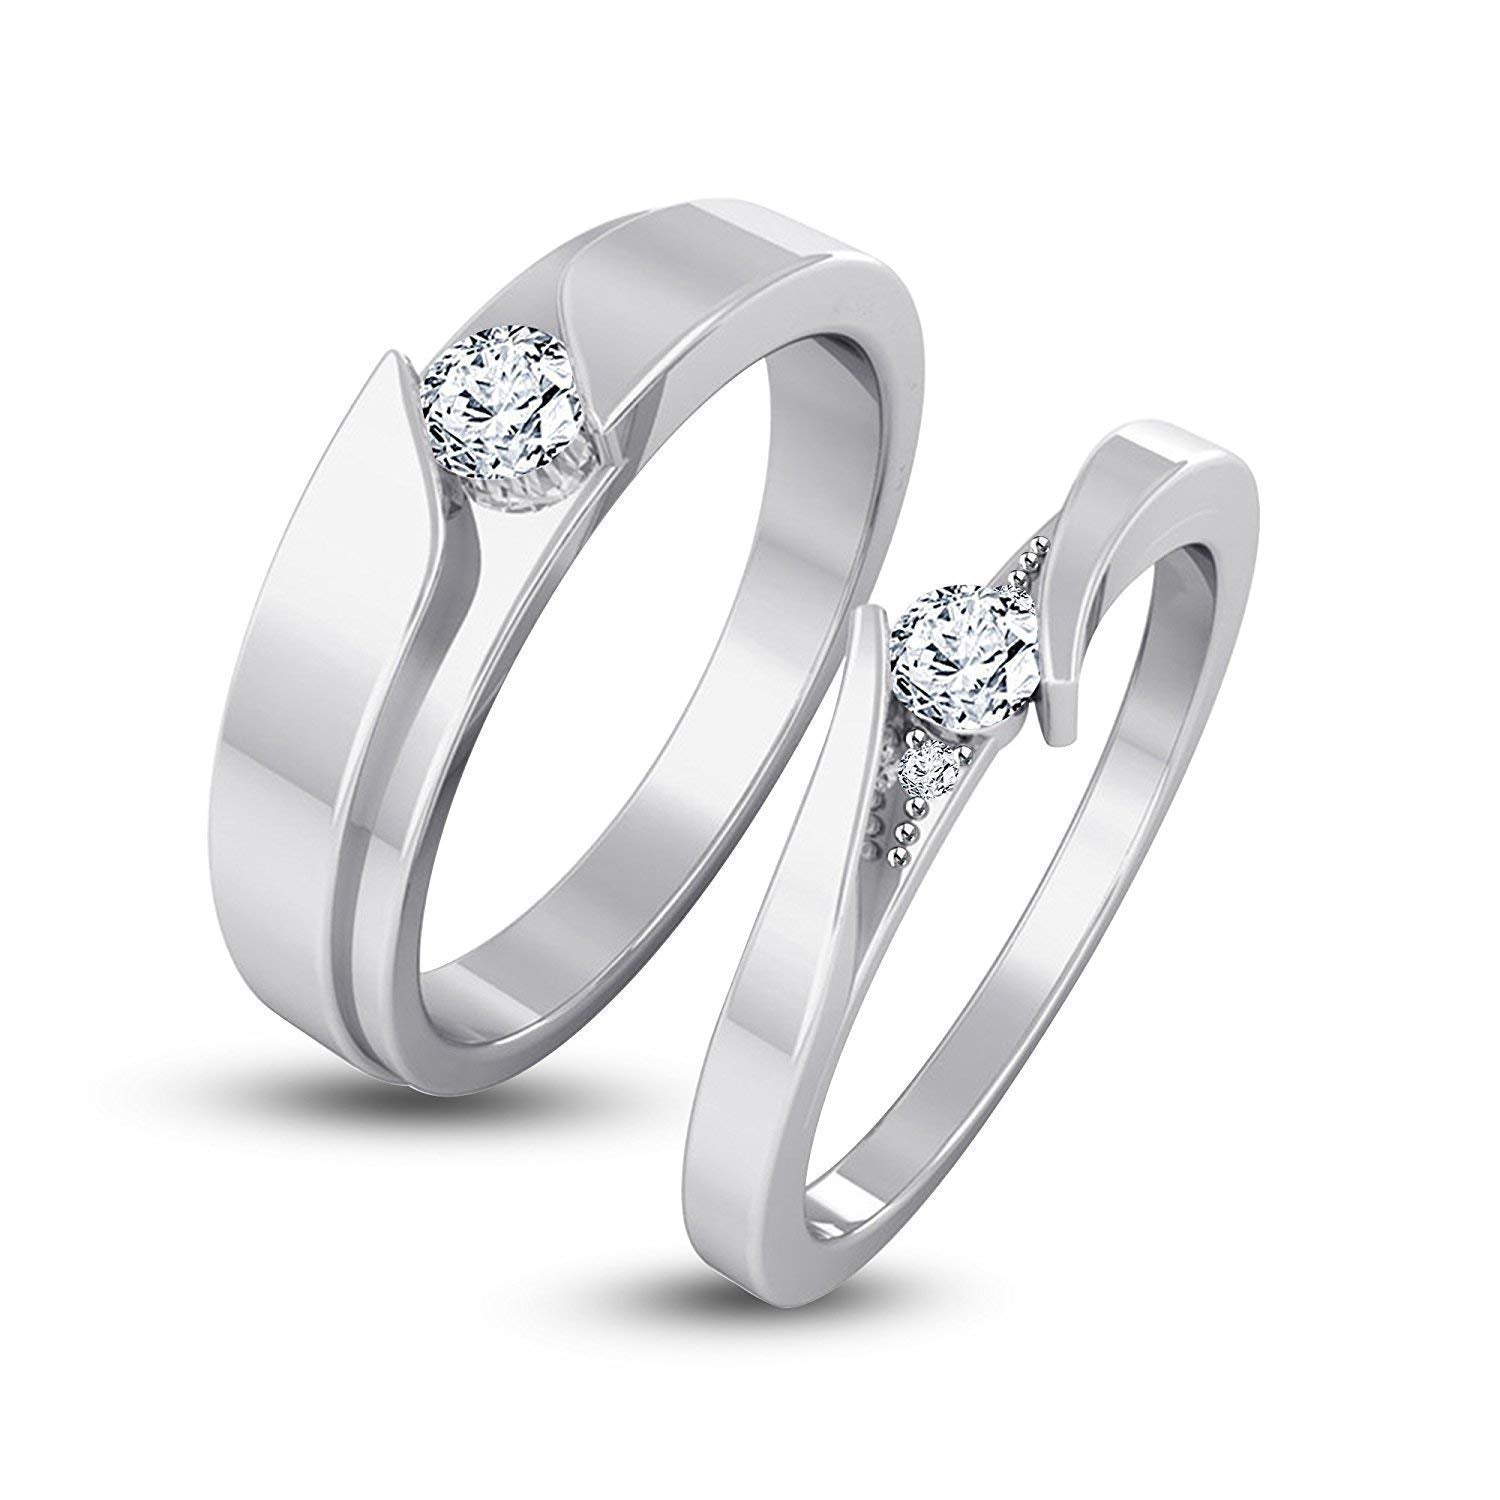 Atjewels 925 Silver Round White Gold Over Cubic Zirconia Elegant